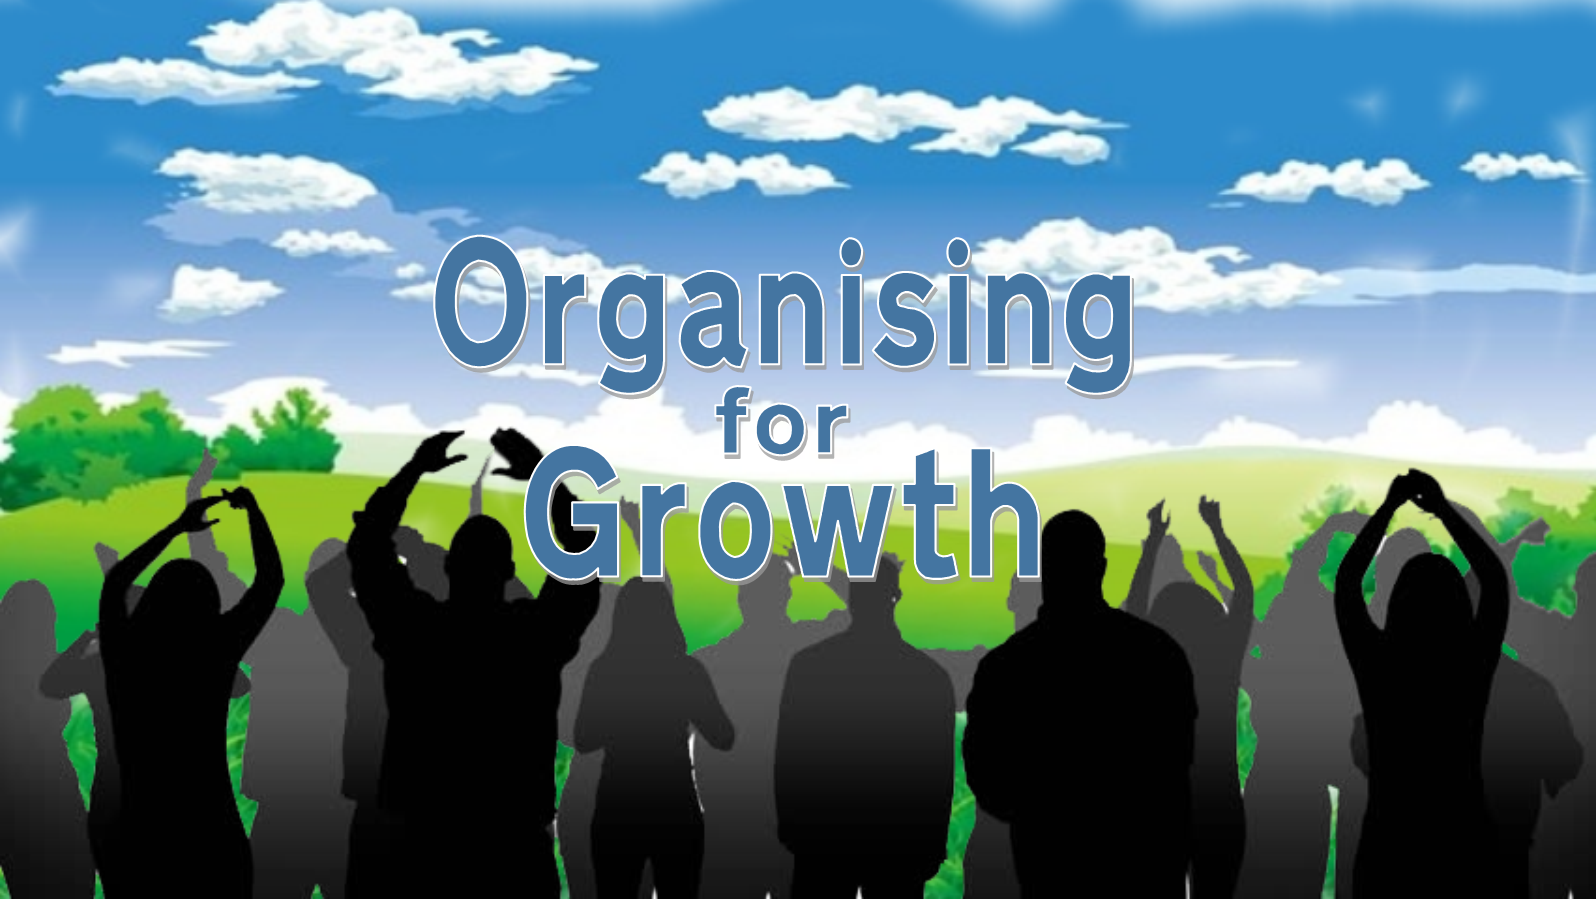 Organising for Growth